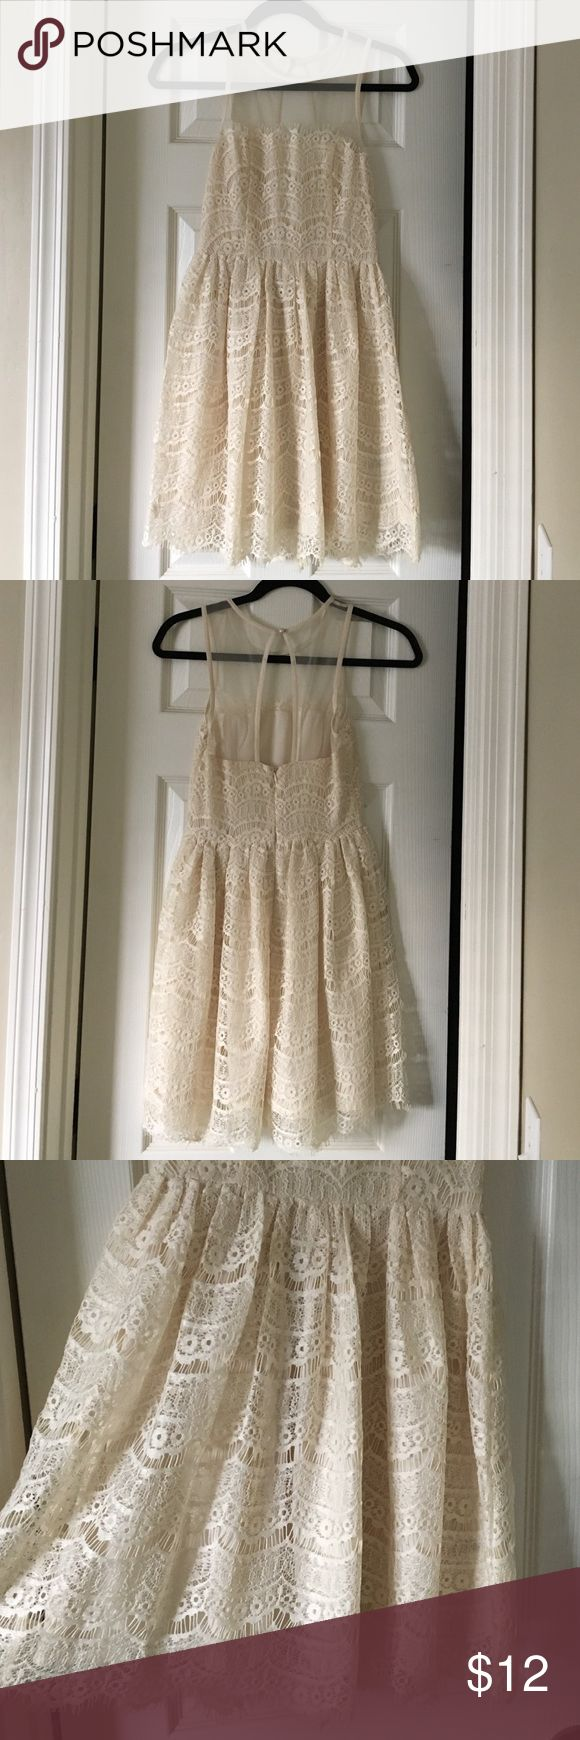 En Créme cream lace top dress. NW with partial tag Cream lace dress with sheer top and cut out back with pearl button. Never worn. NW & extra button. It has lovely lace details! Perfect for a bridal shower or bachelorette party. En Créme Dresses Mini